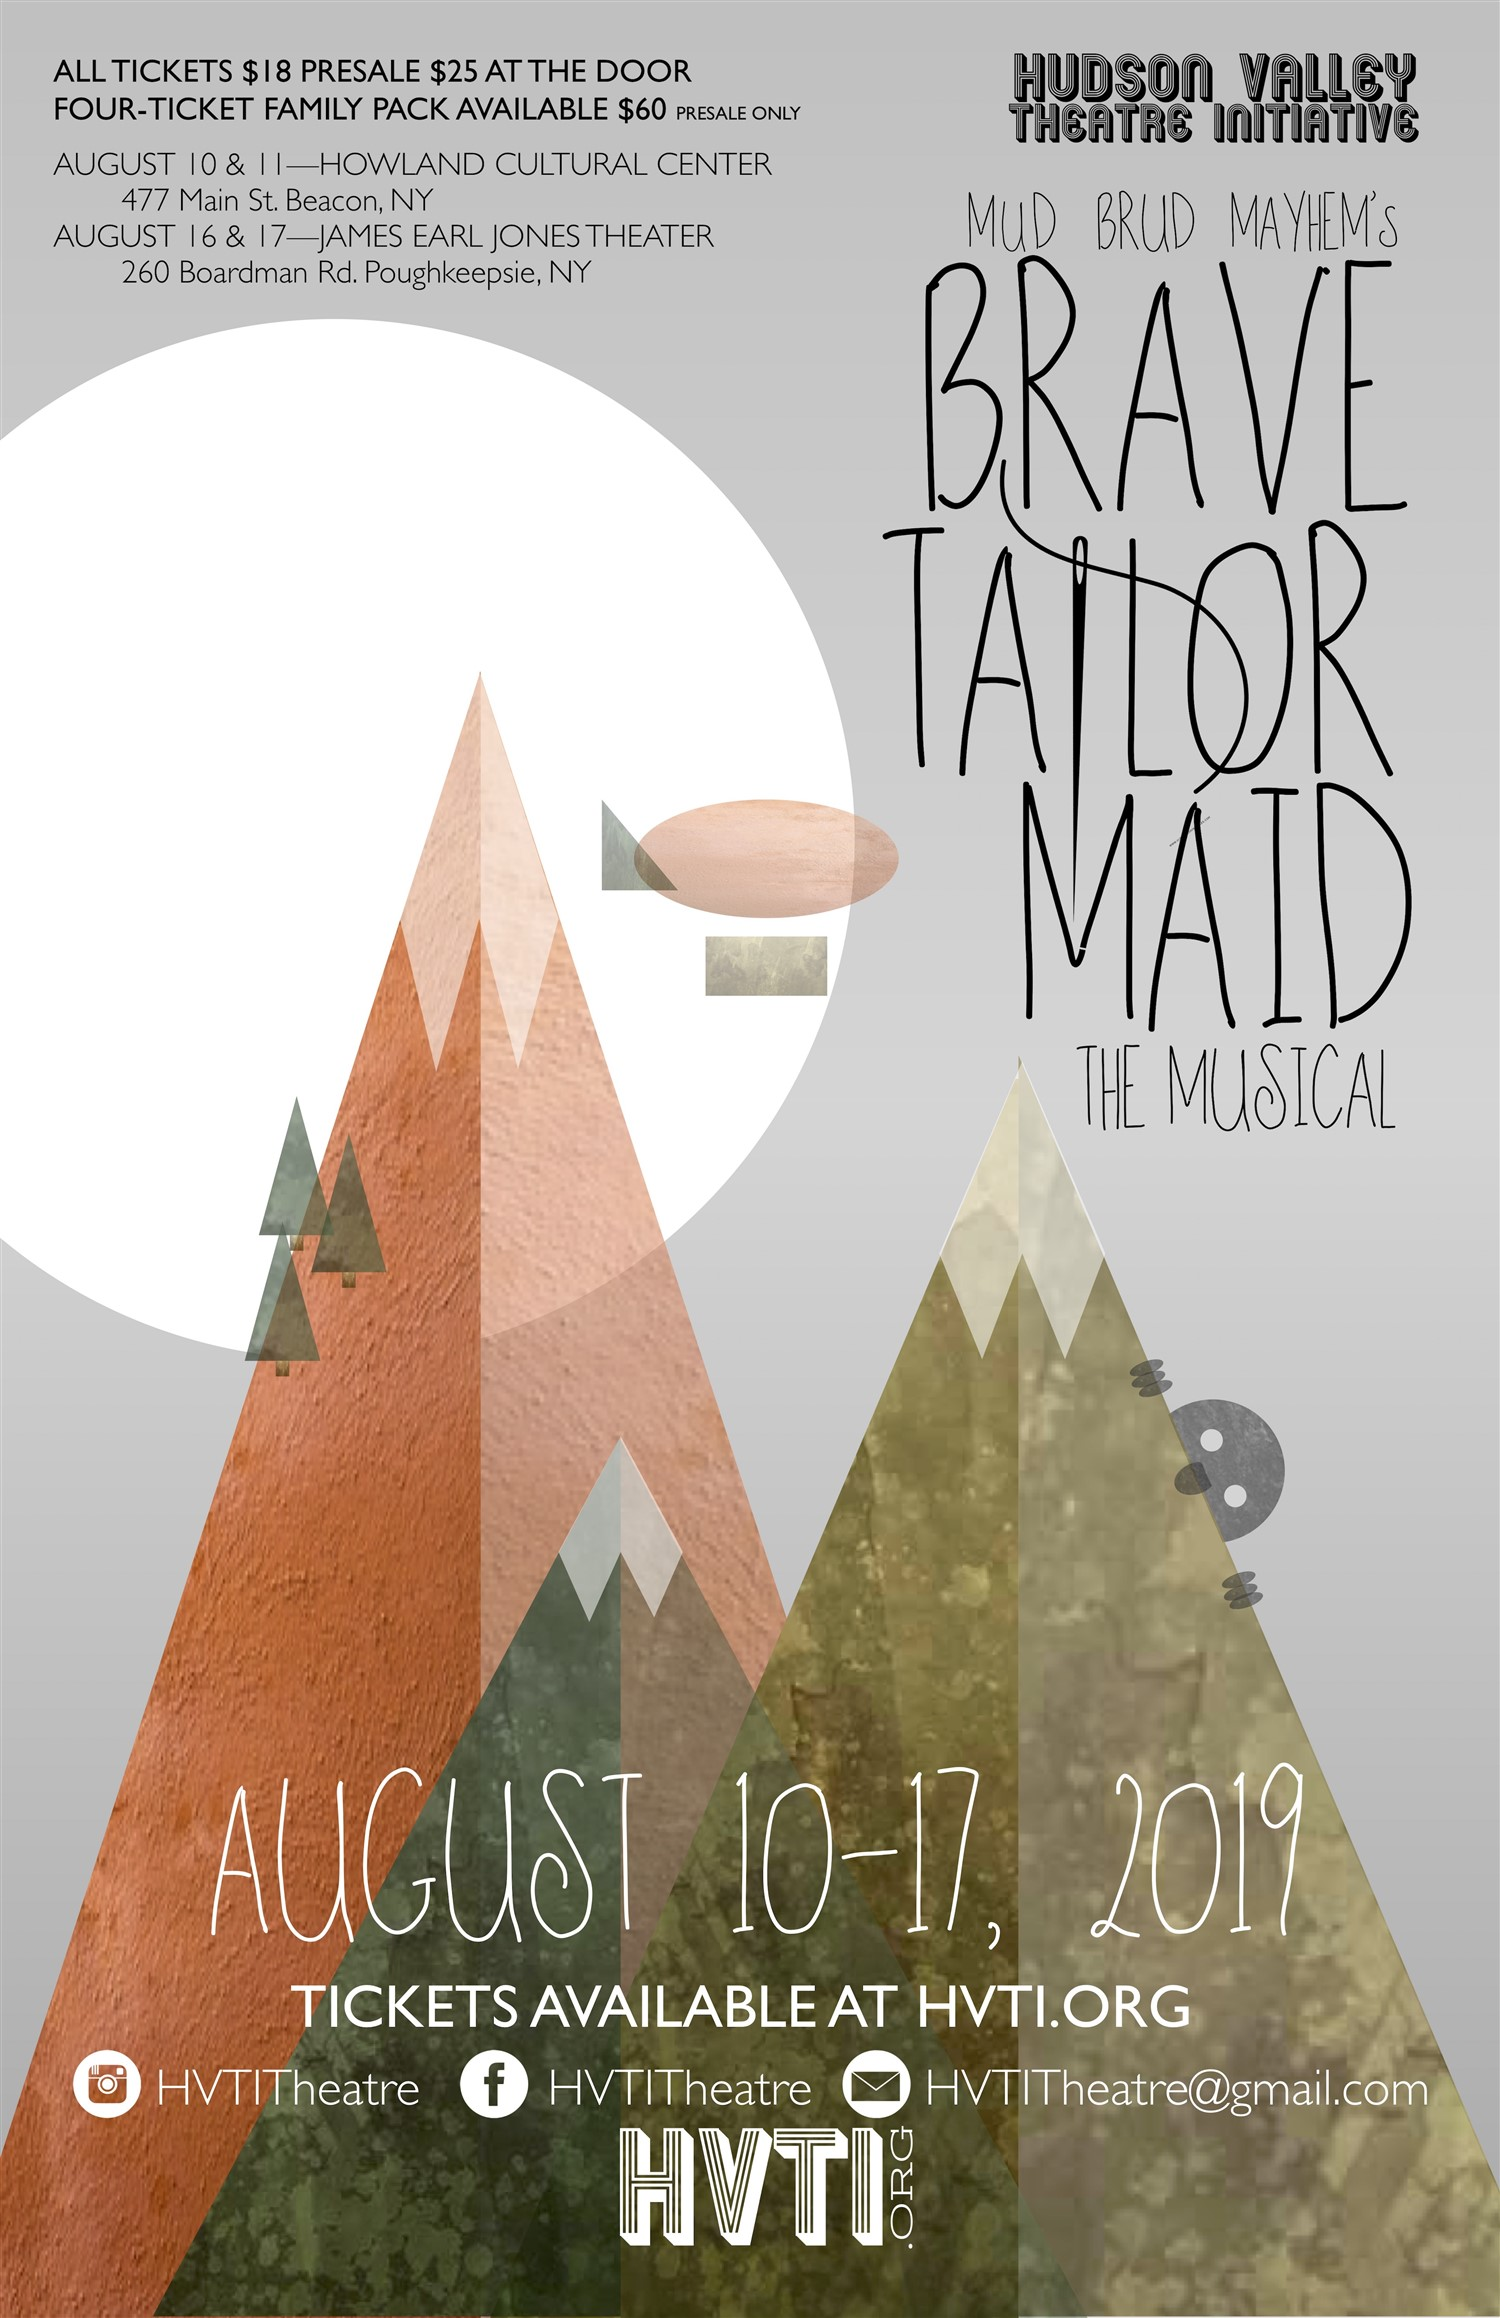 Brave Tailor Maid The Musical on Aug 16, 19:00@James Earl Jones Theater - Buy tickets and Get information on Hudson Valley Theatre Initiati